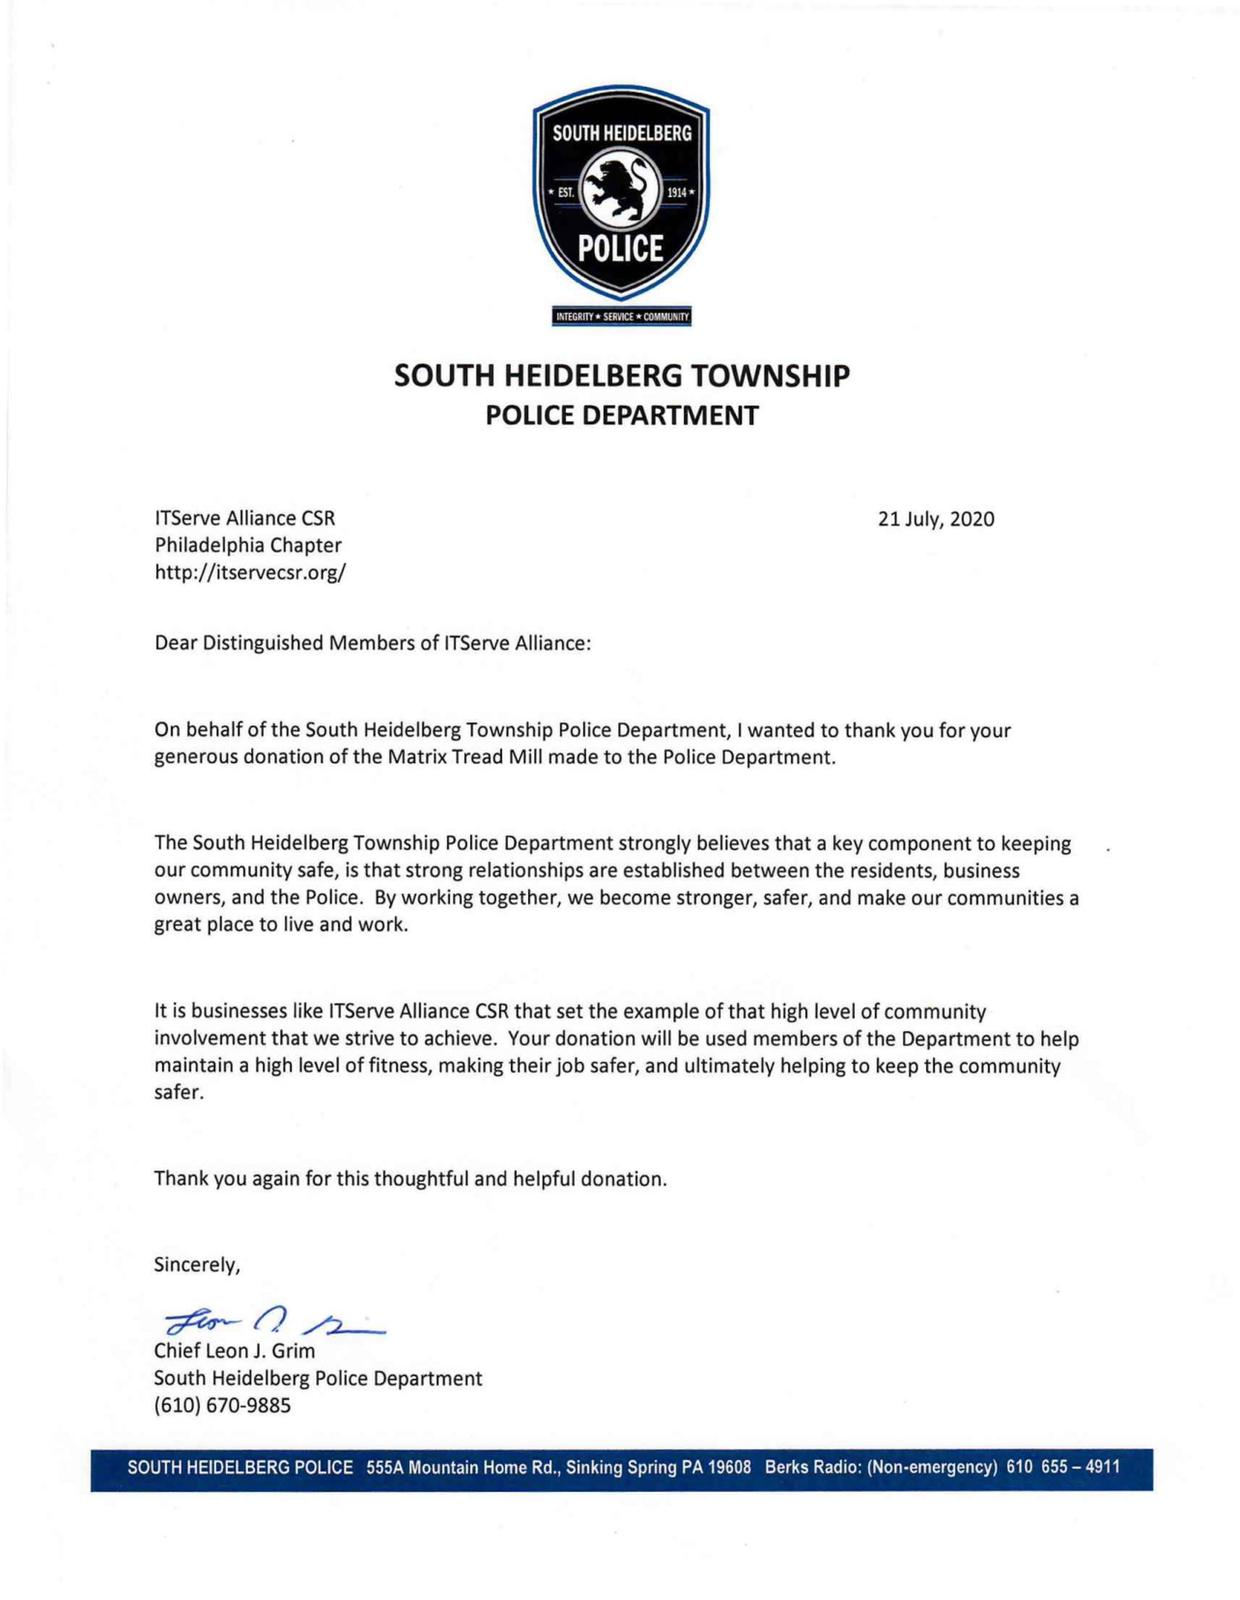 Received a Thank You letter from South Heidelberg Township Police Department